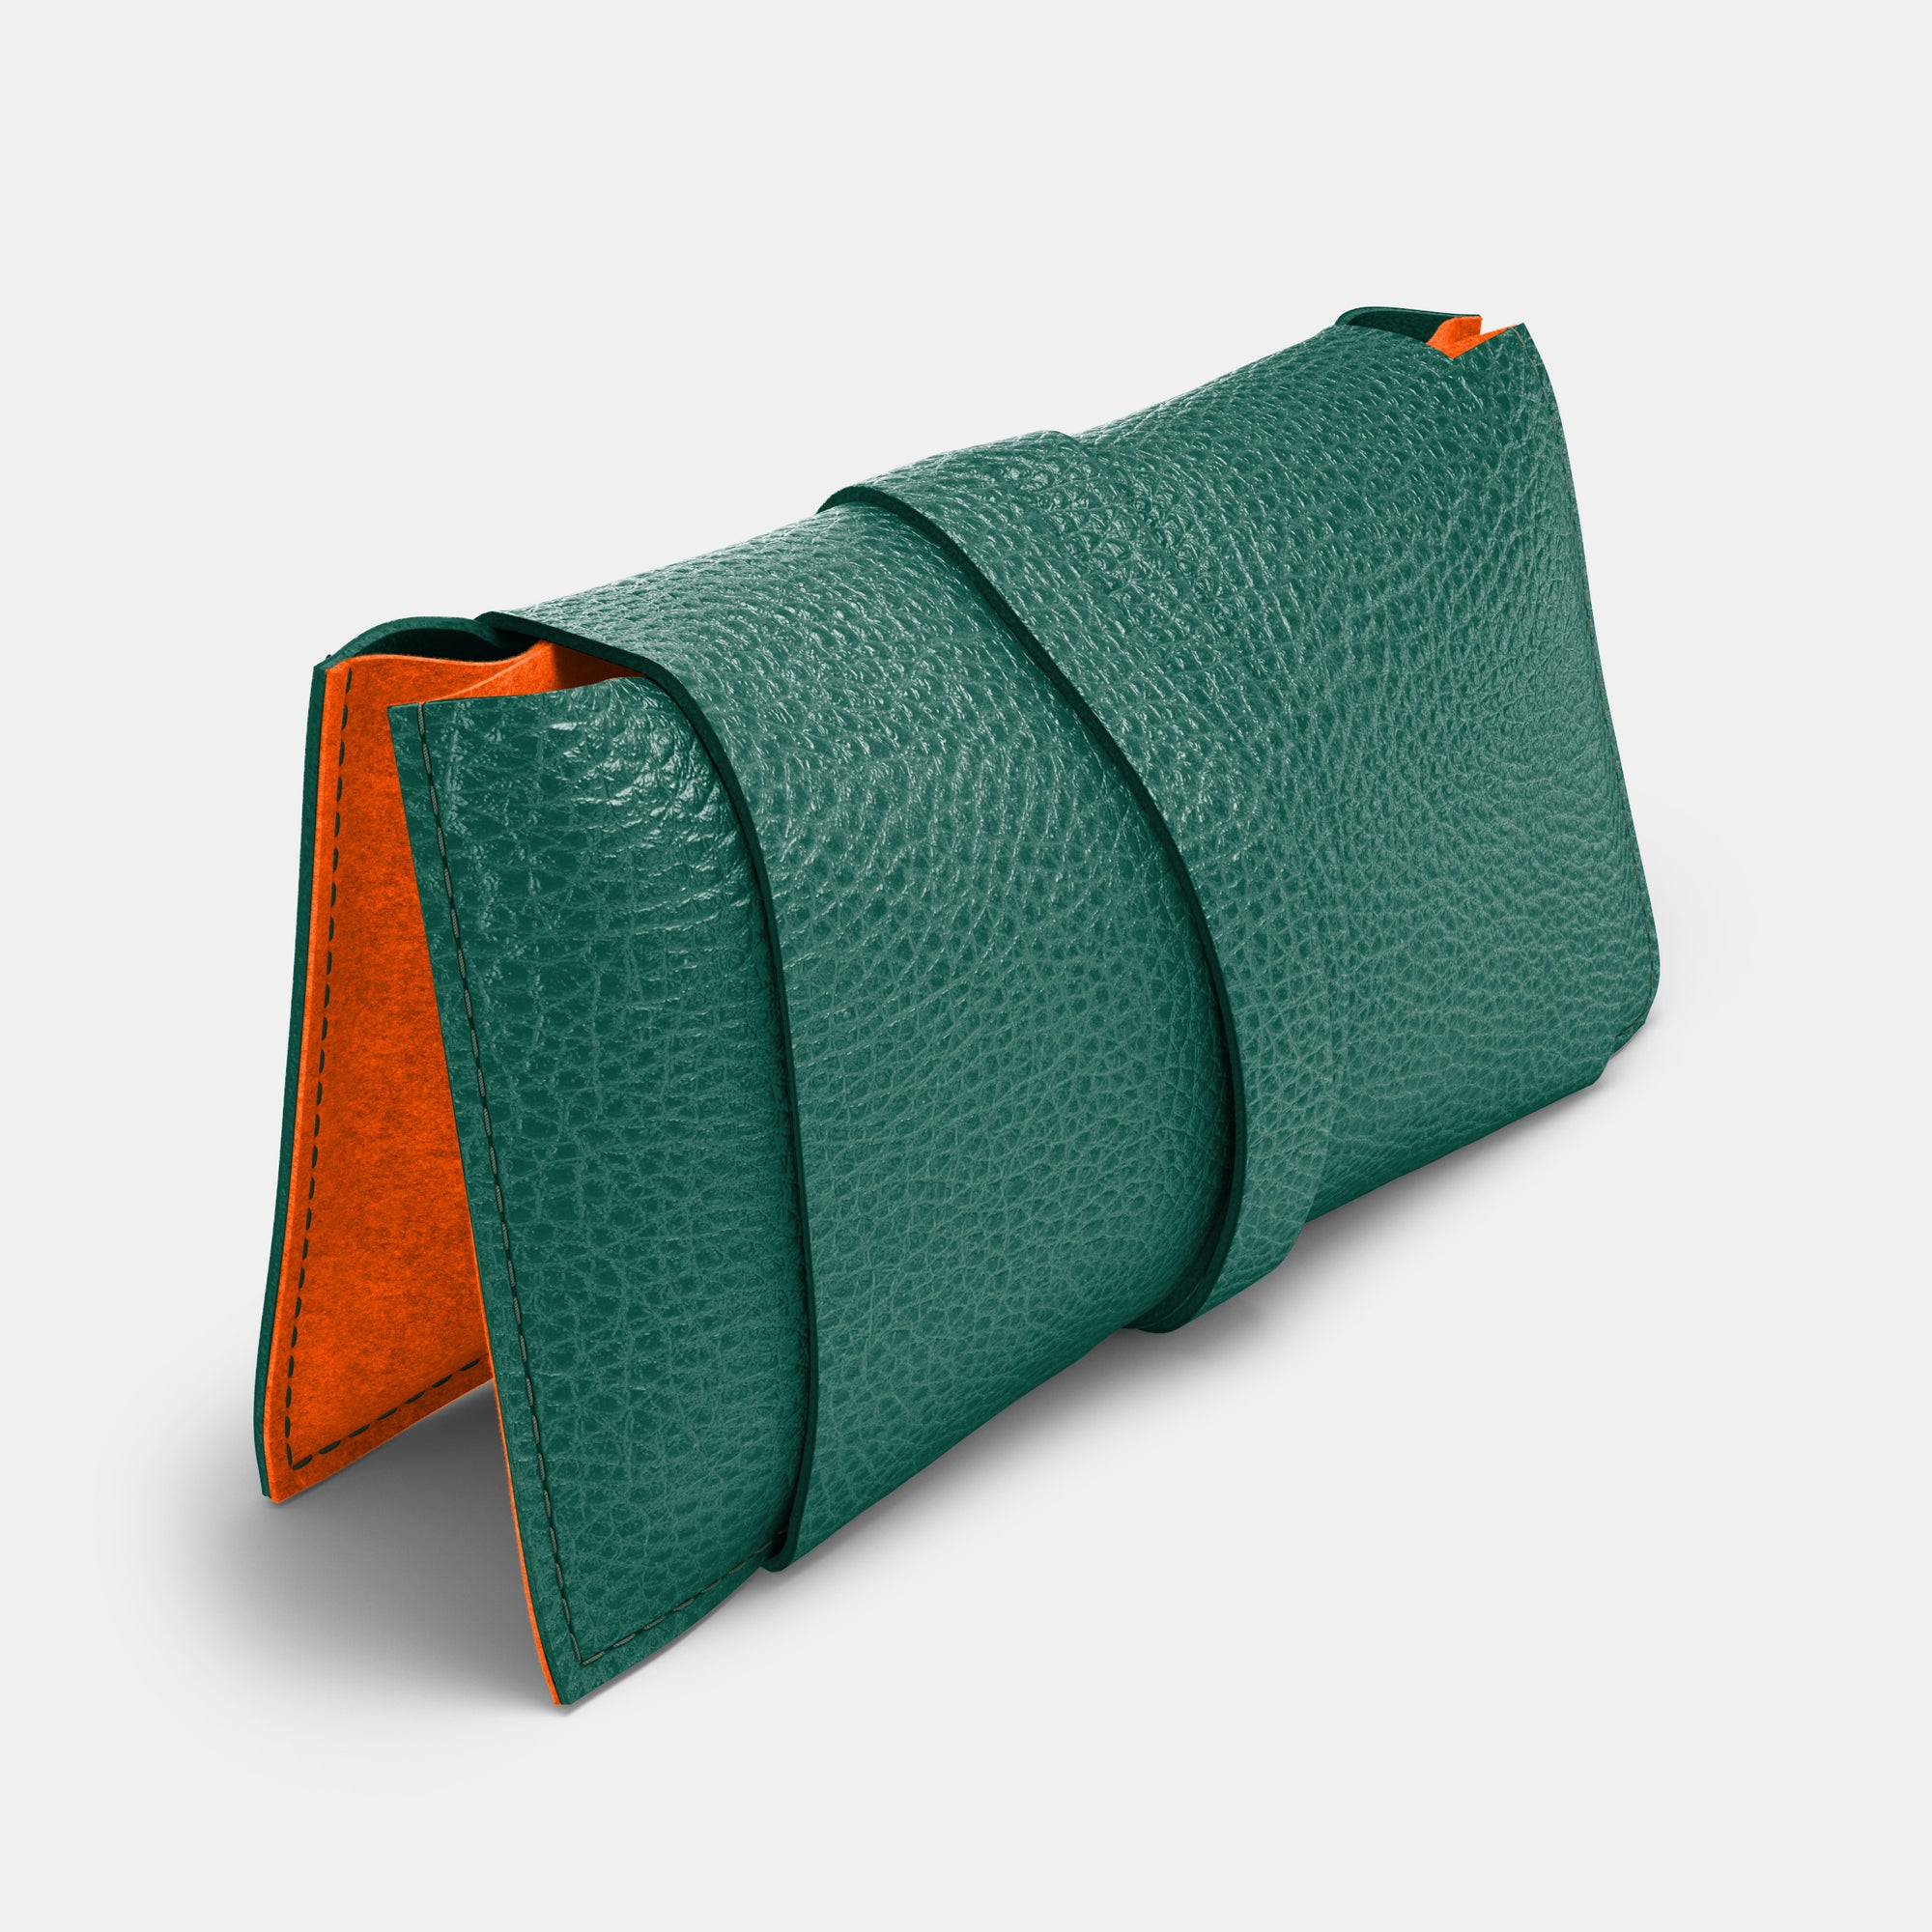 Cable Bag - Avocado and Orange - RYAN London